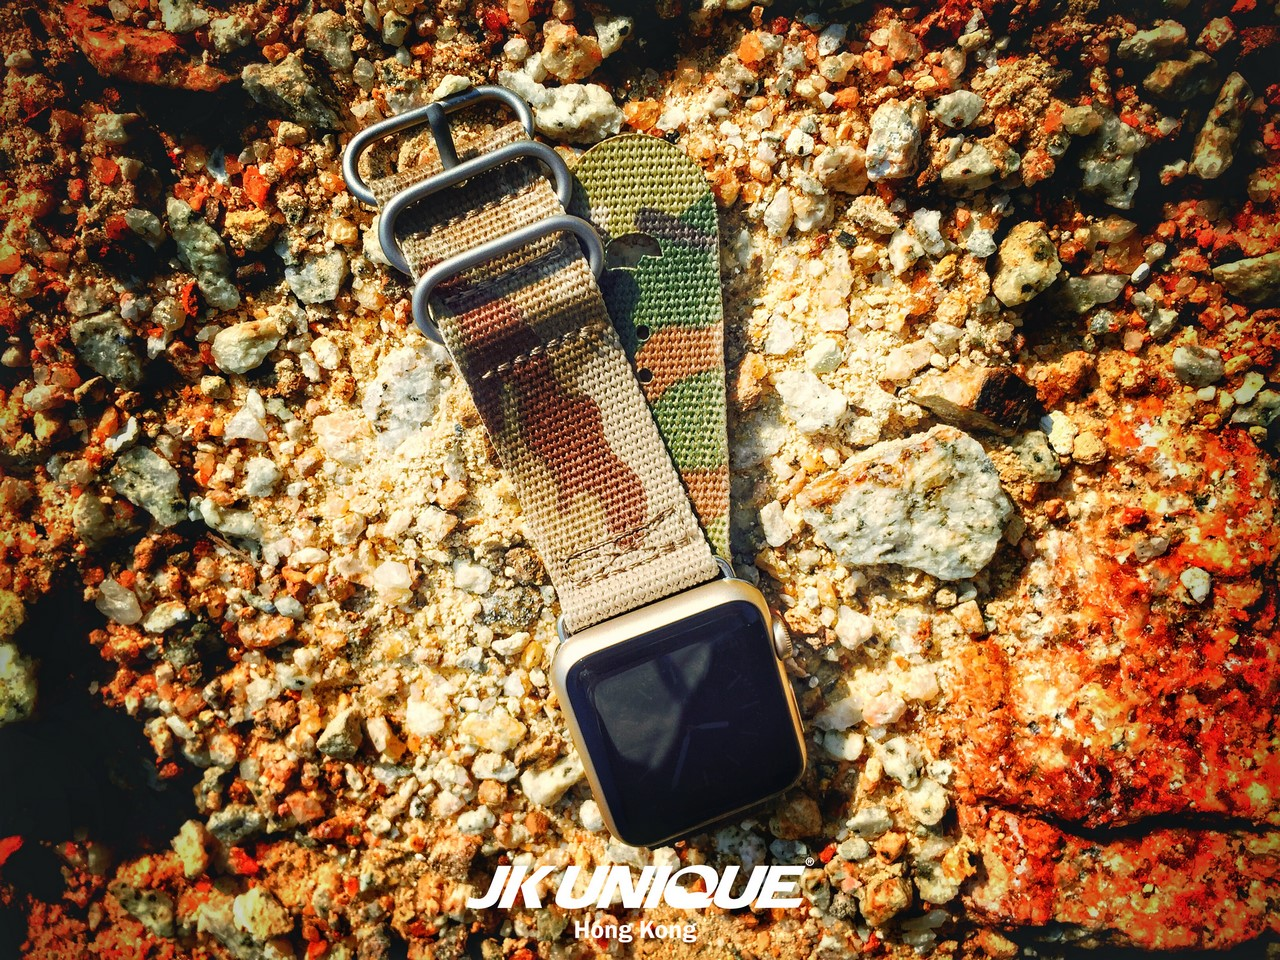 JK UNIQUE CAMO NATO Style Apple Watch Strap 42mm 9 (1280).jpg